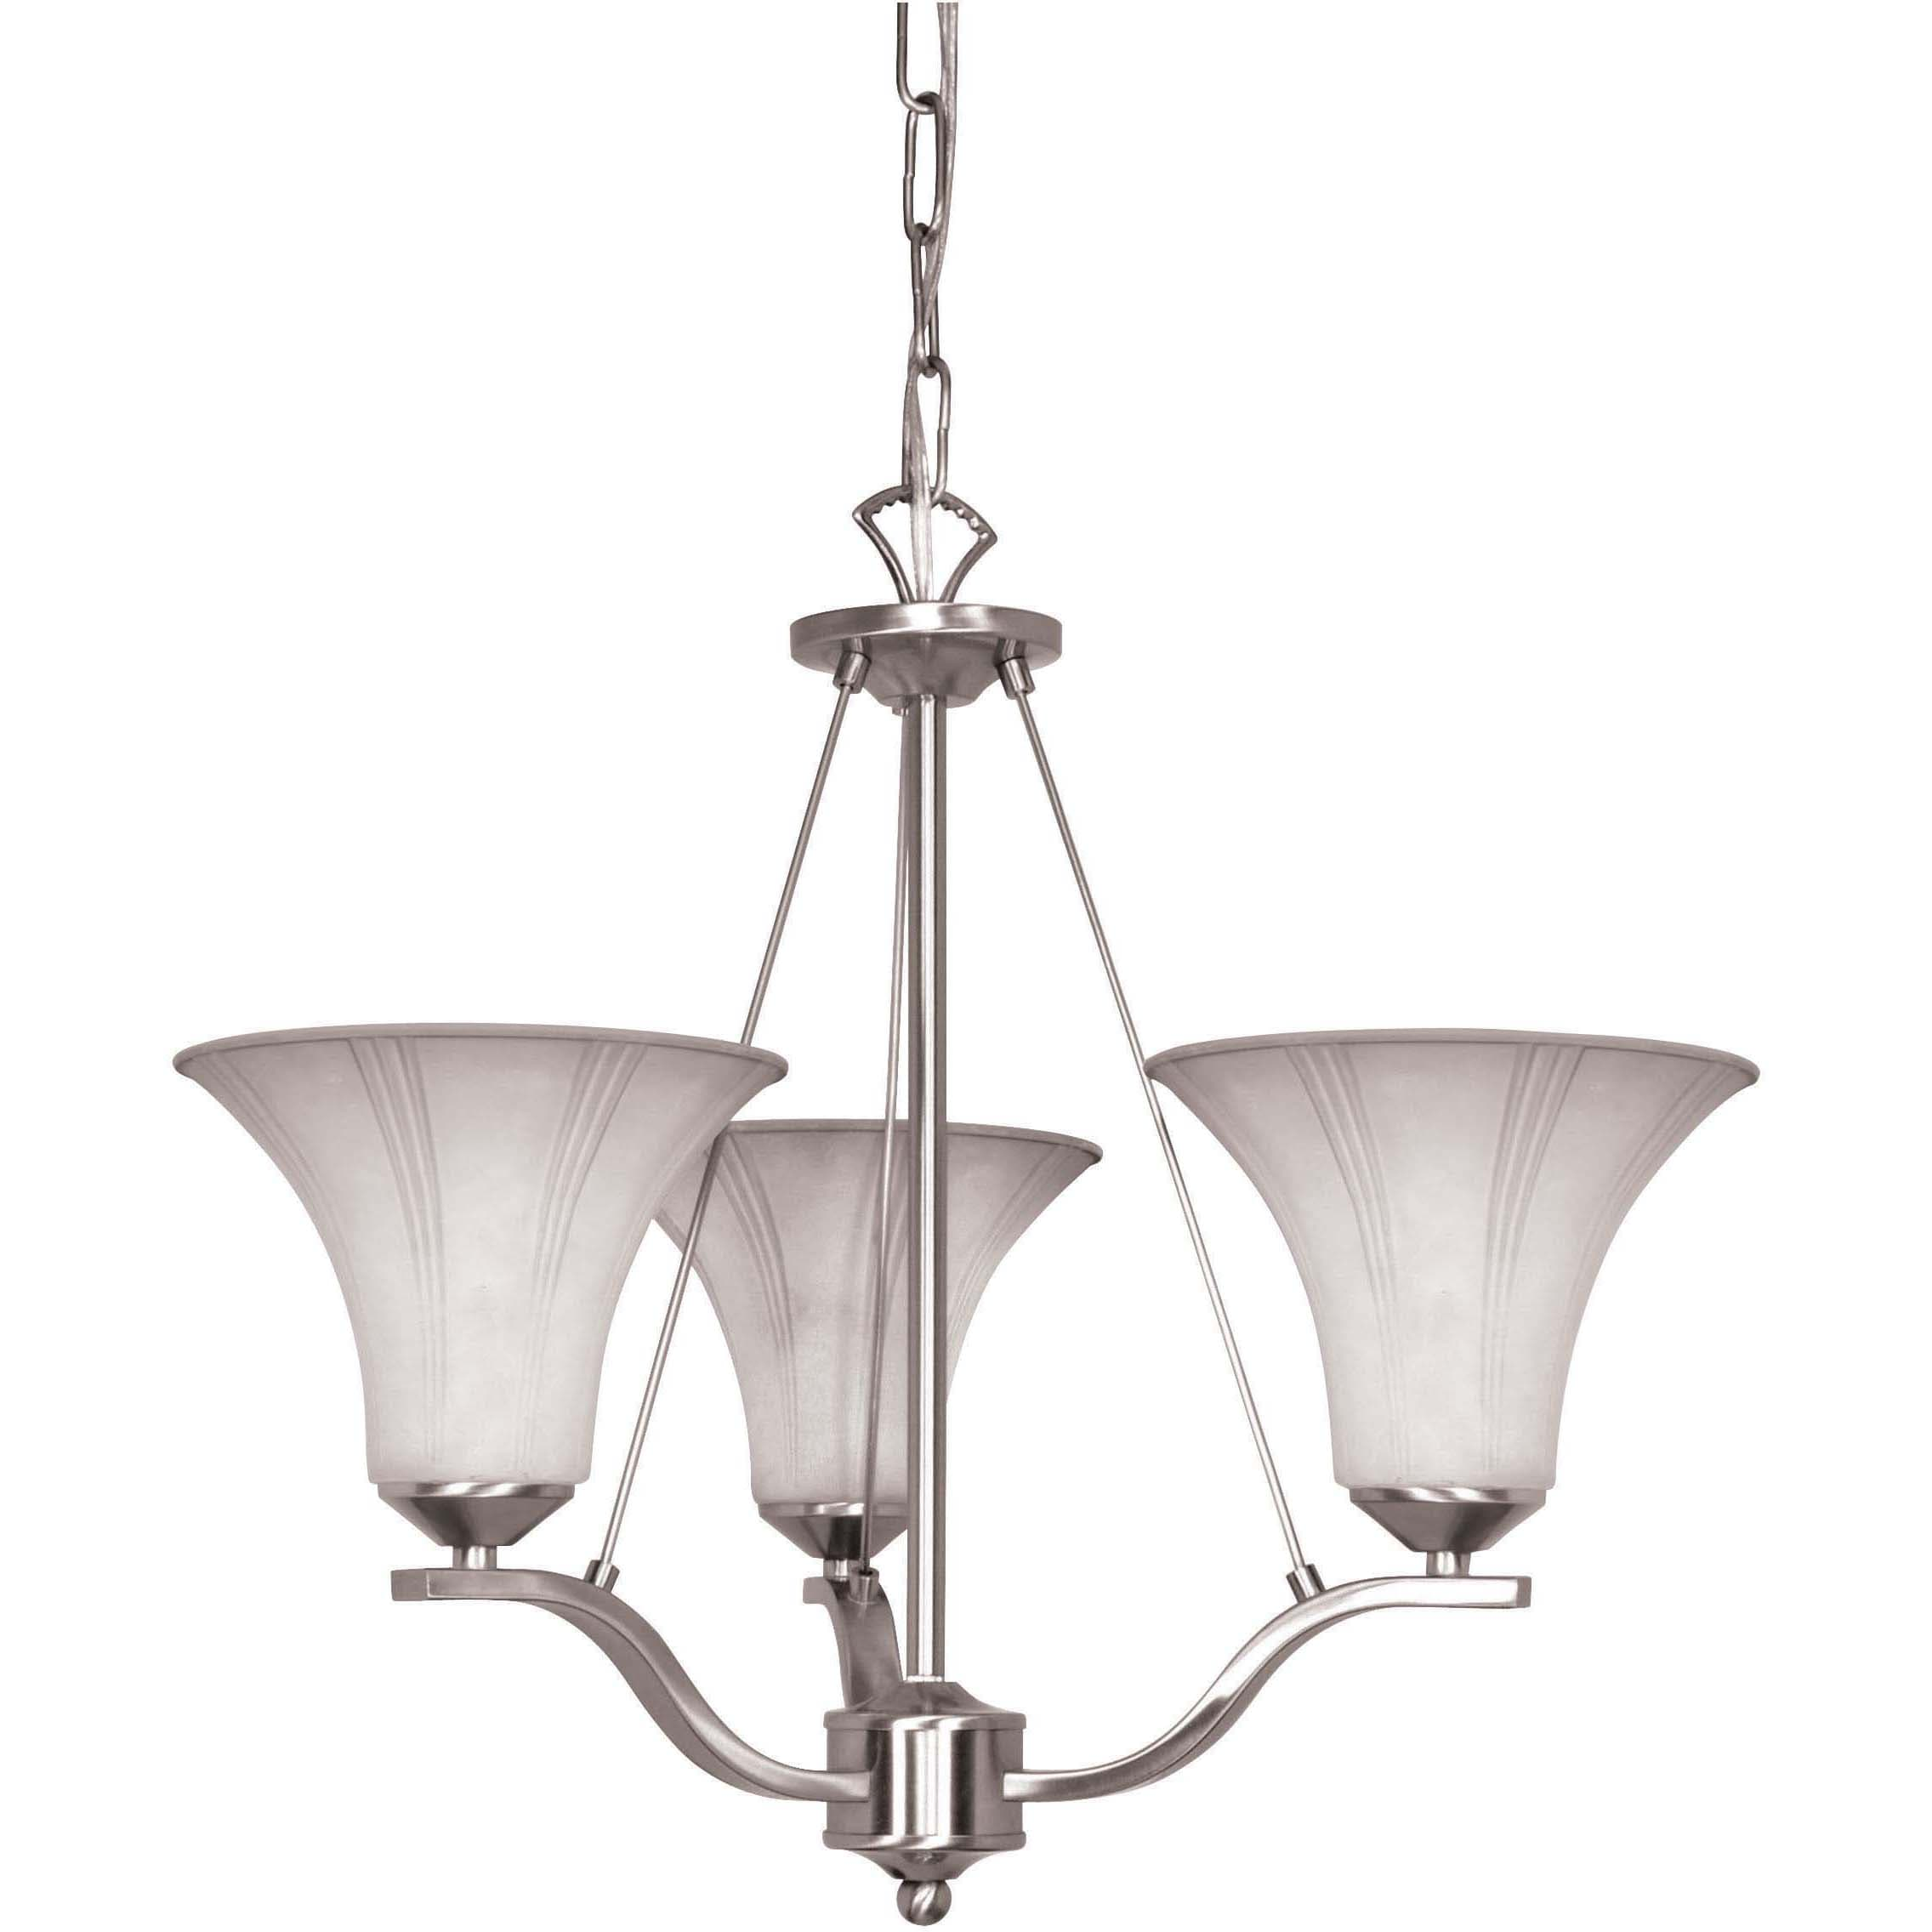 Delano 3 Light Mini Chandelier Brushed Nickel with Grey Suede Glass